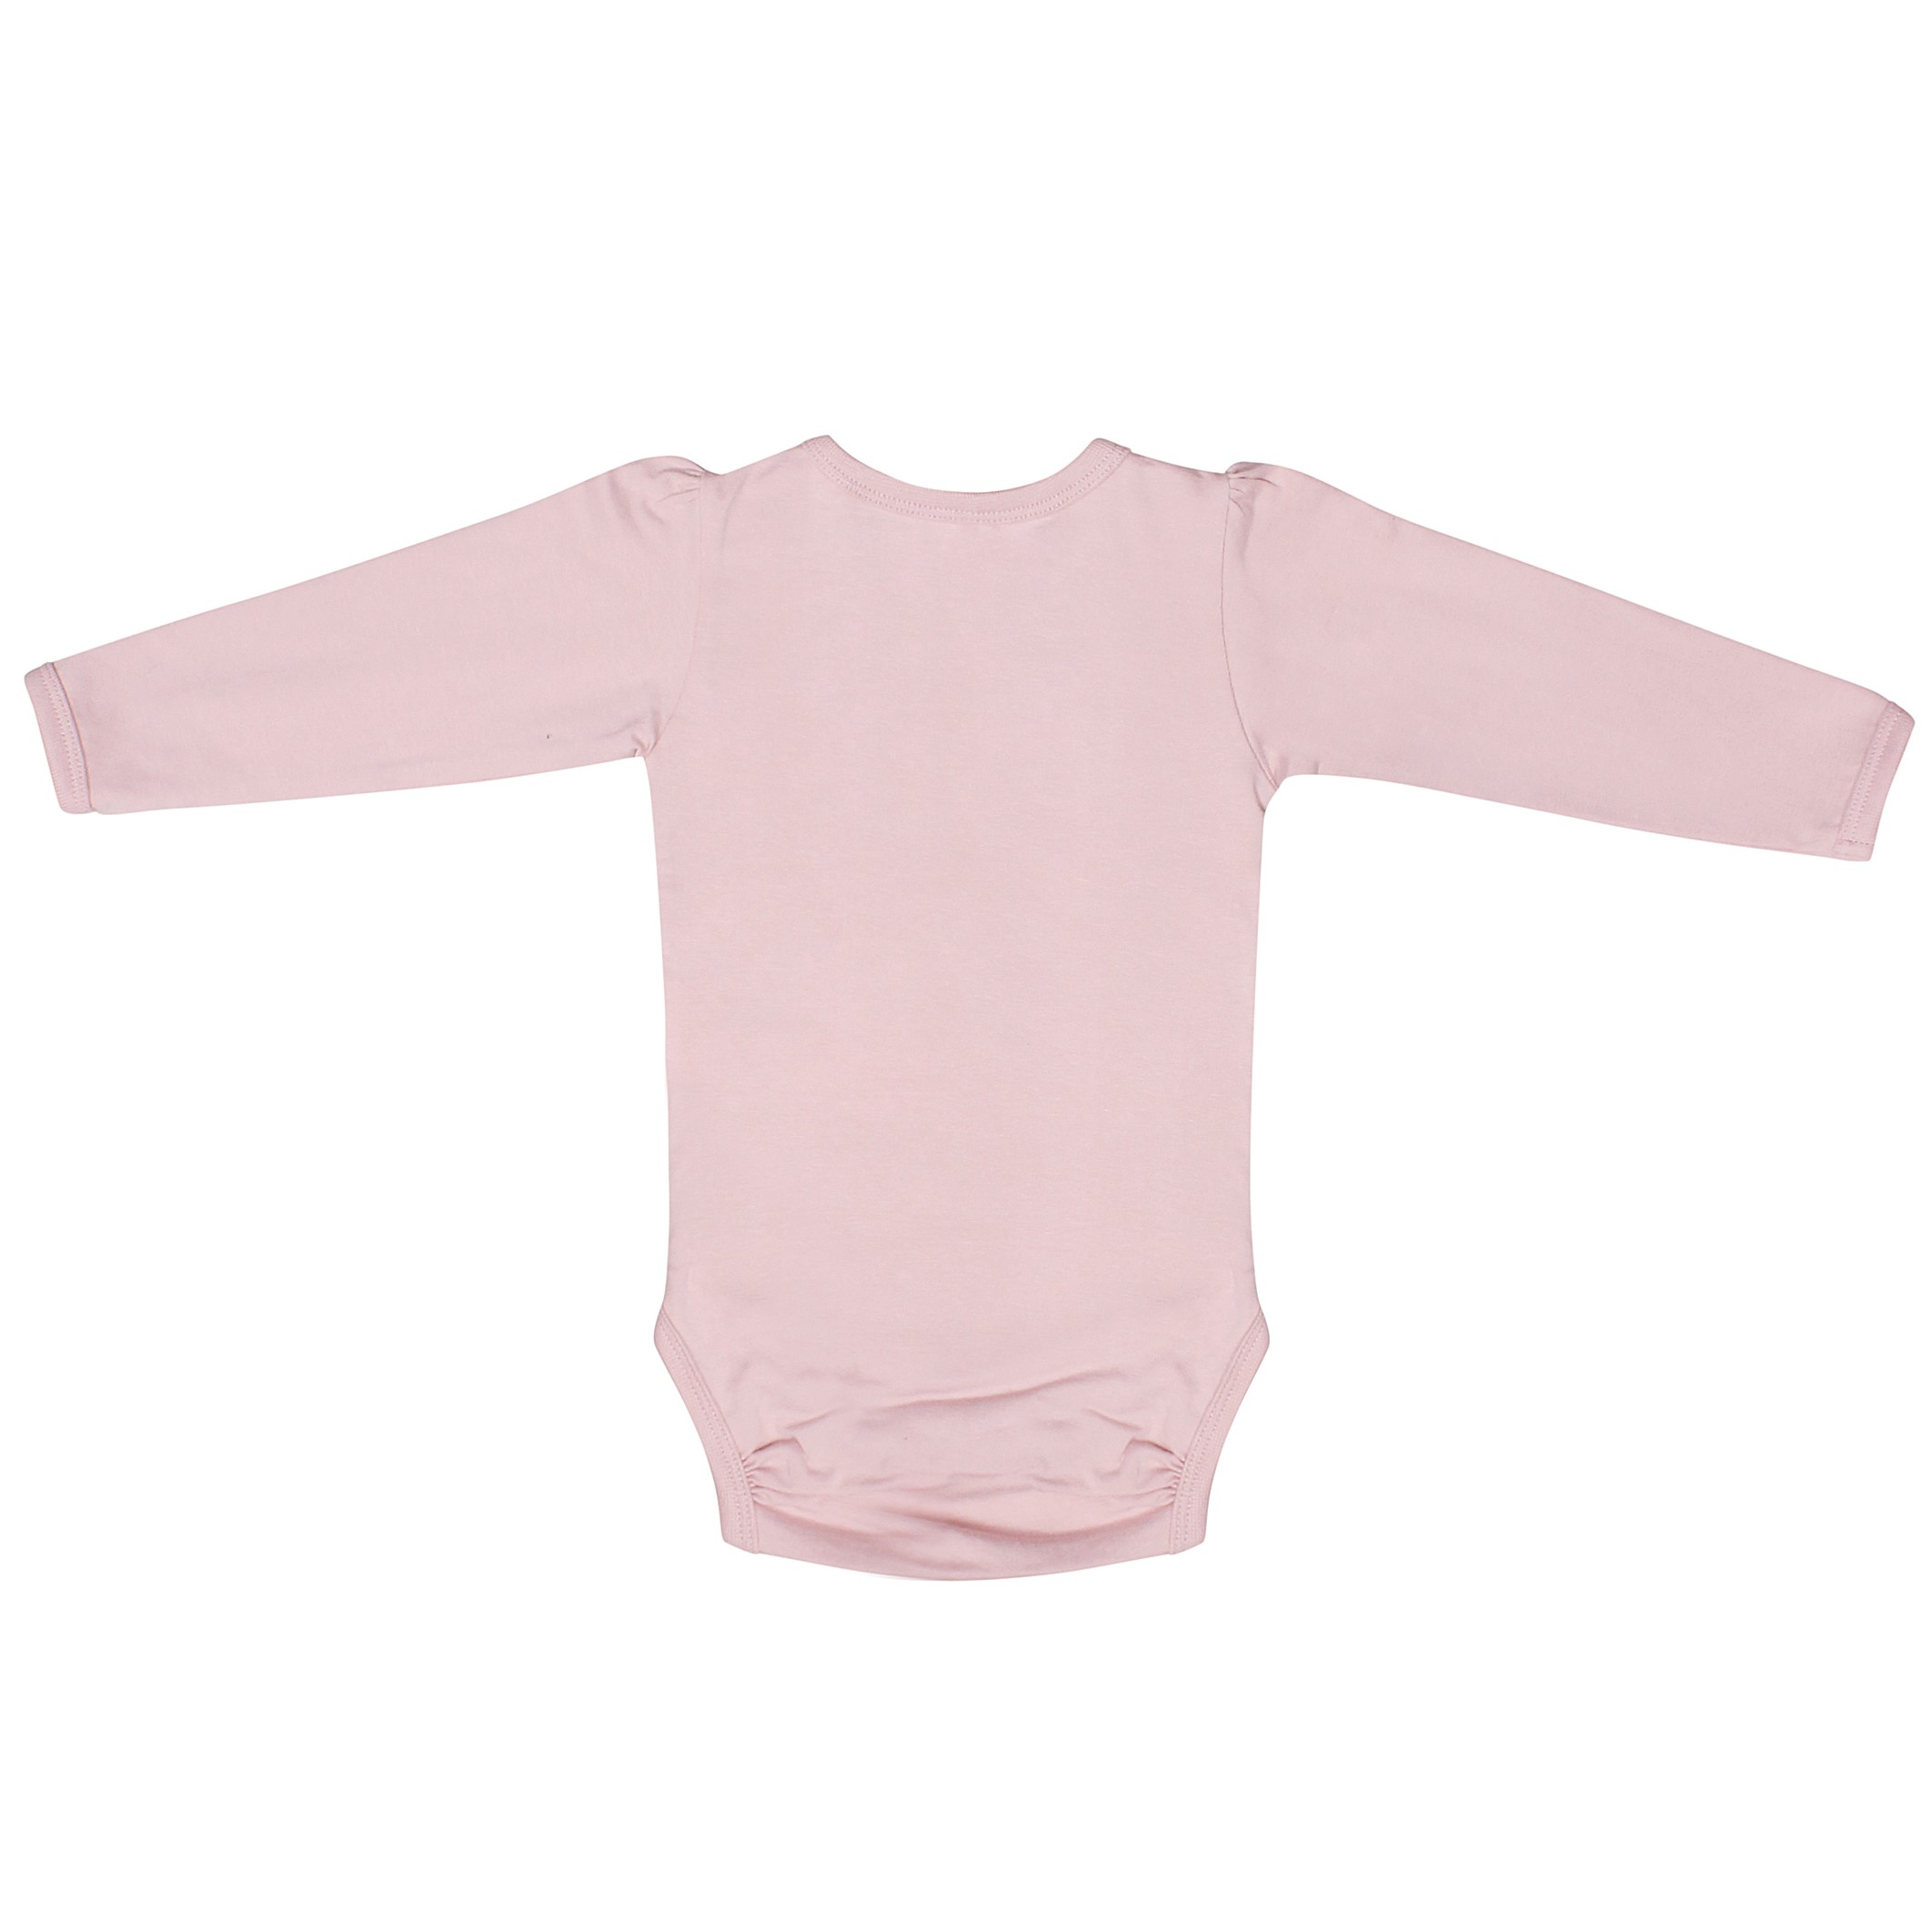 KIDS UP BABY | NO DATE BODY - ROSE